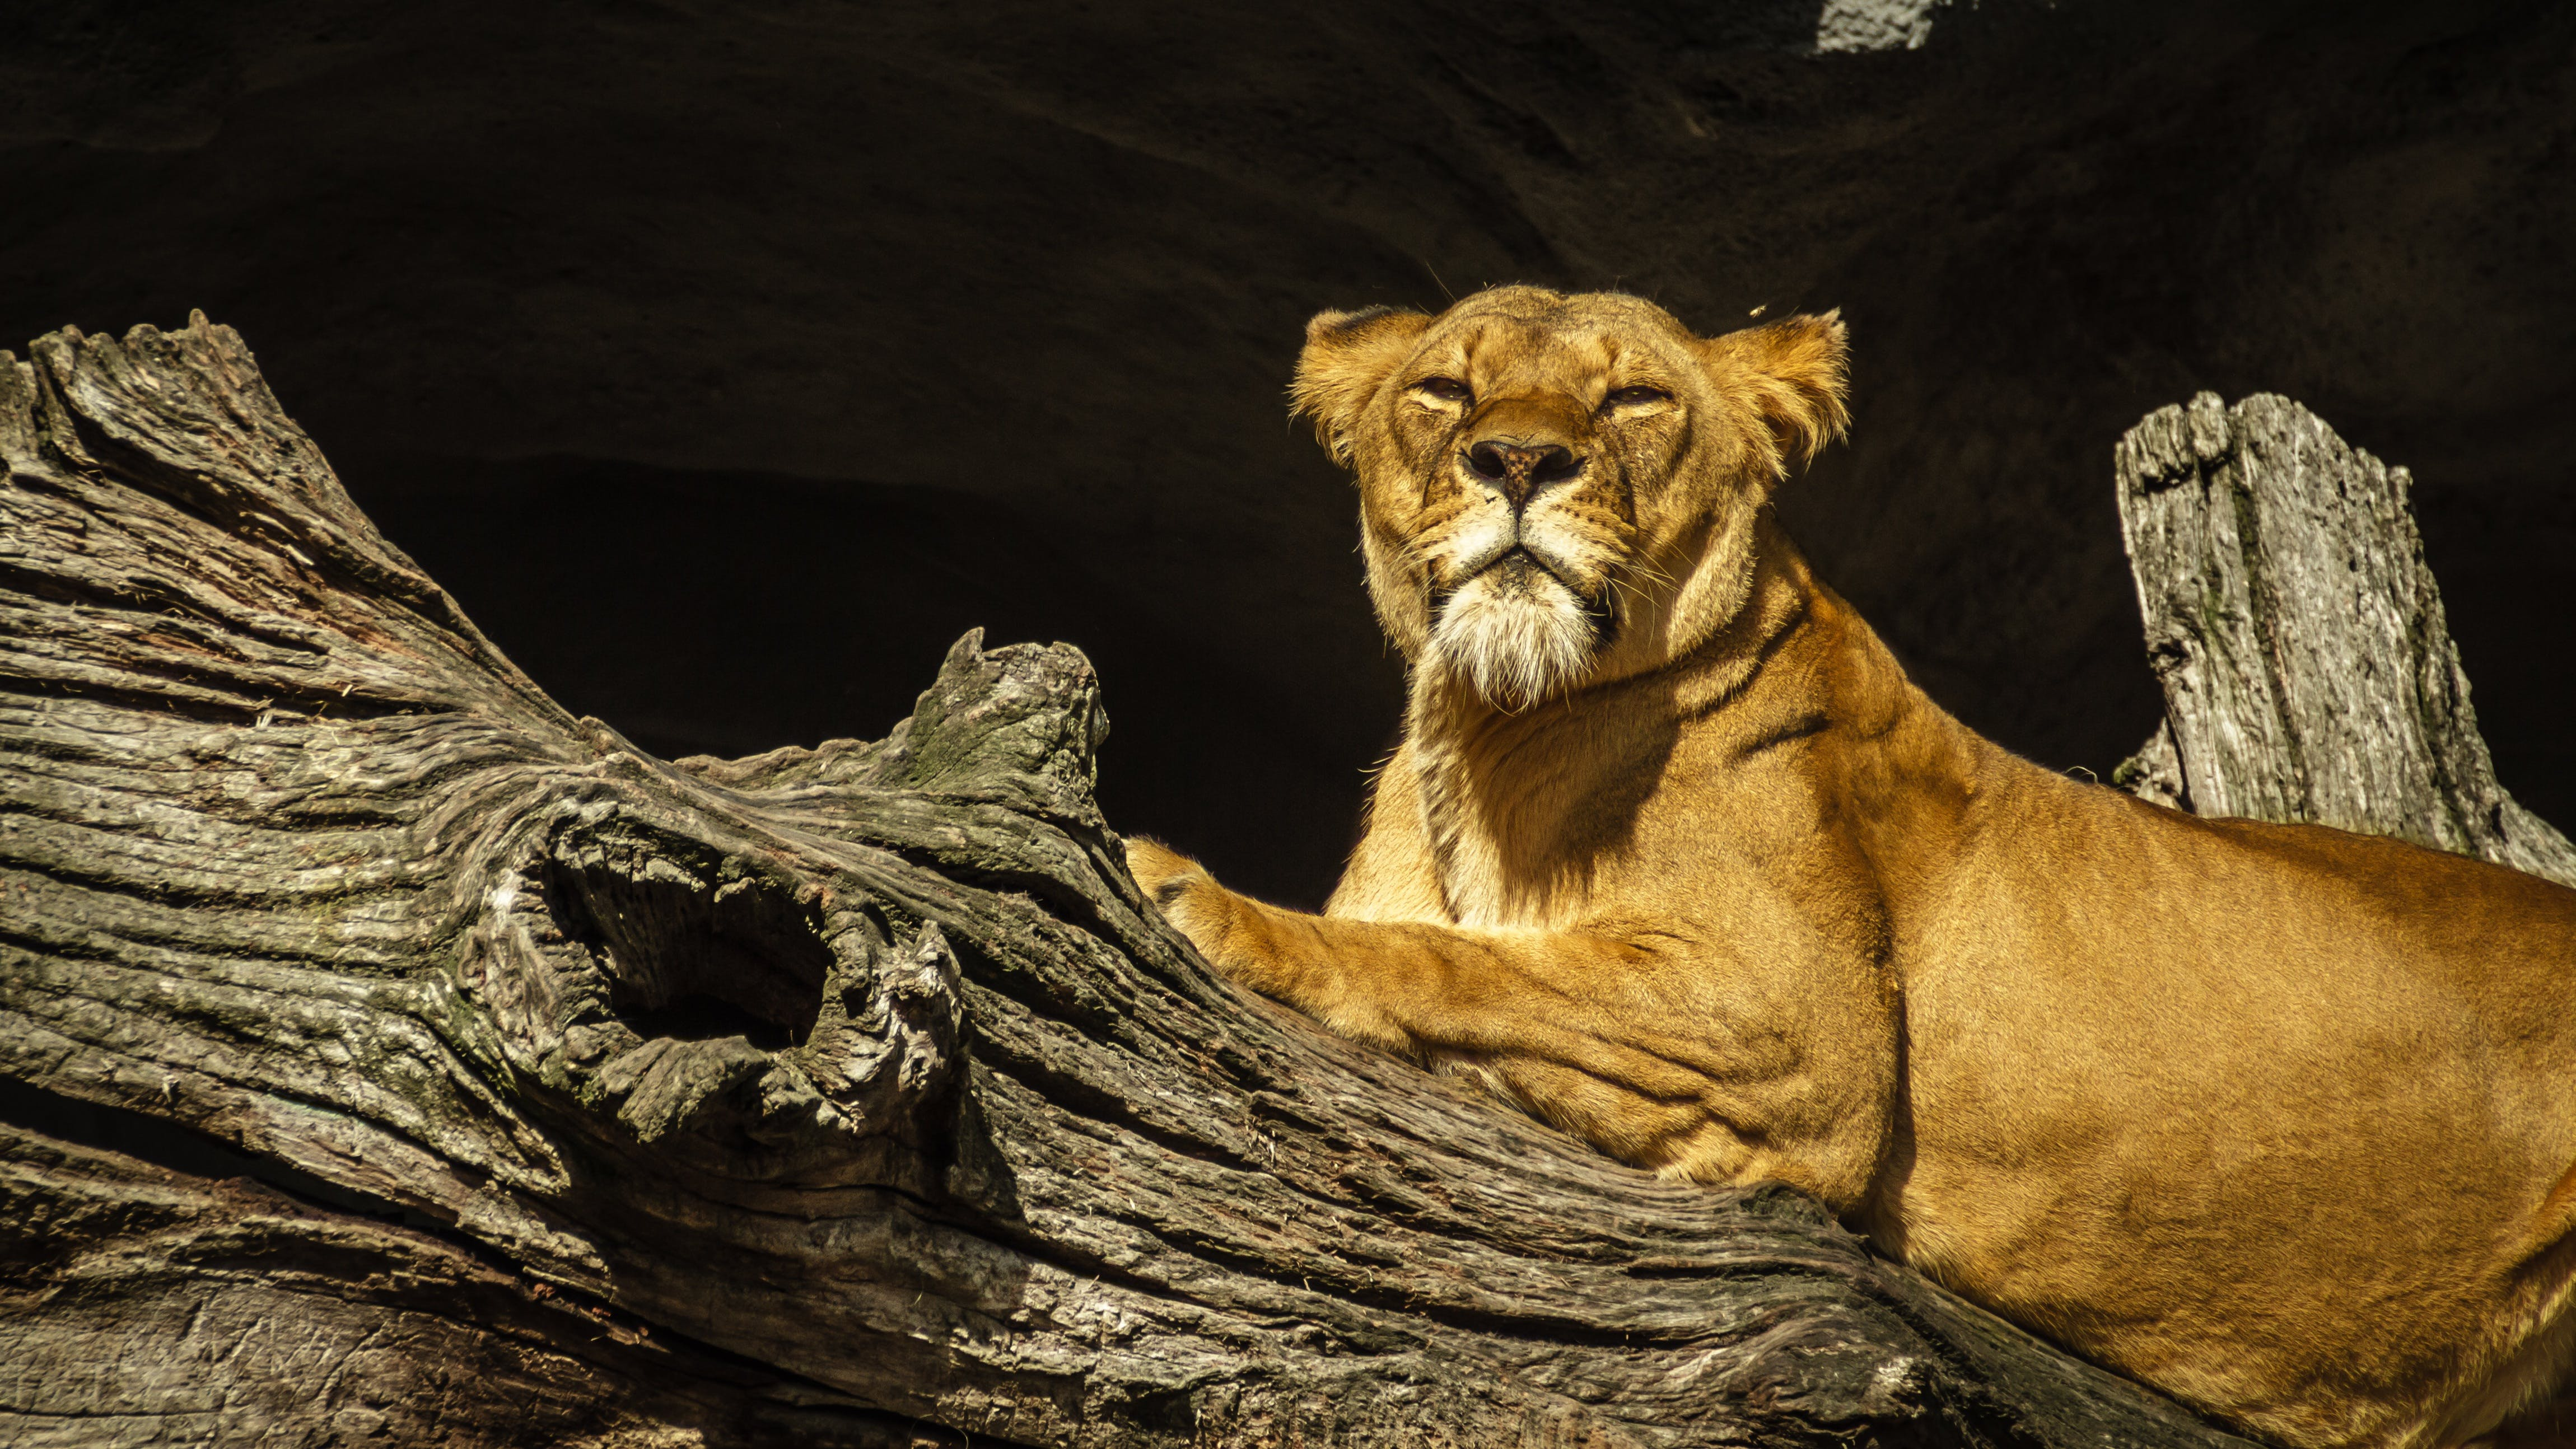 Lioness on Driftwood